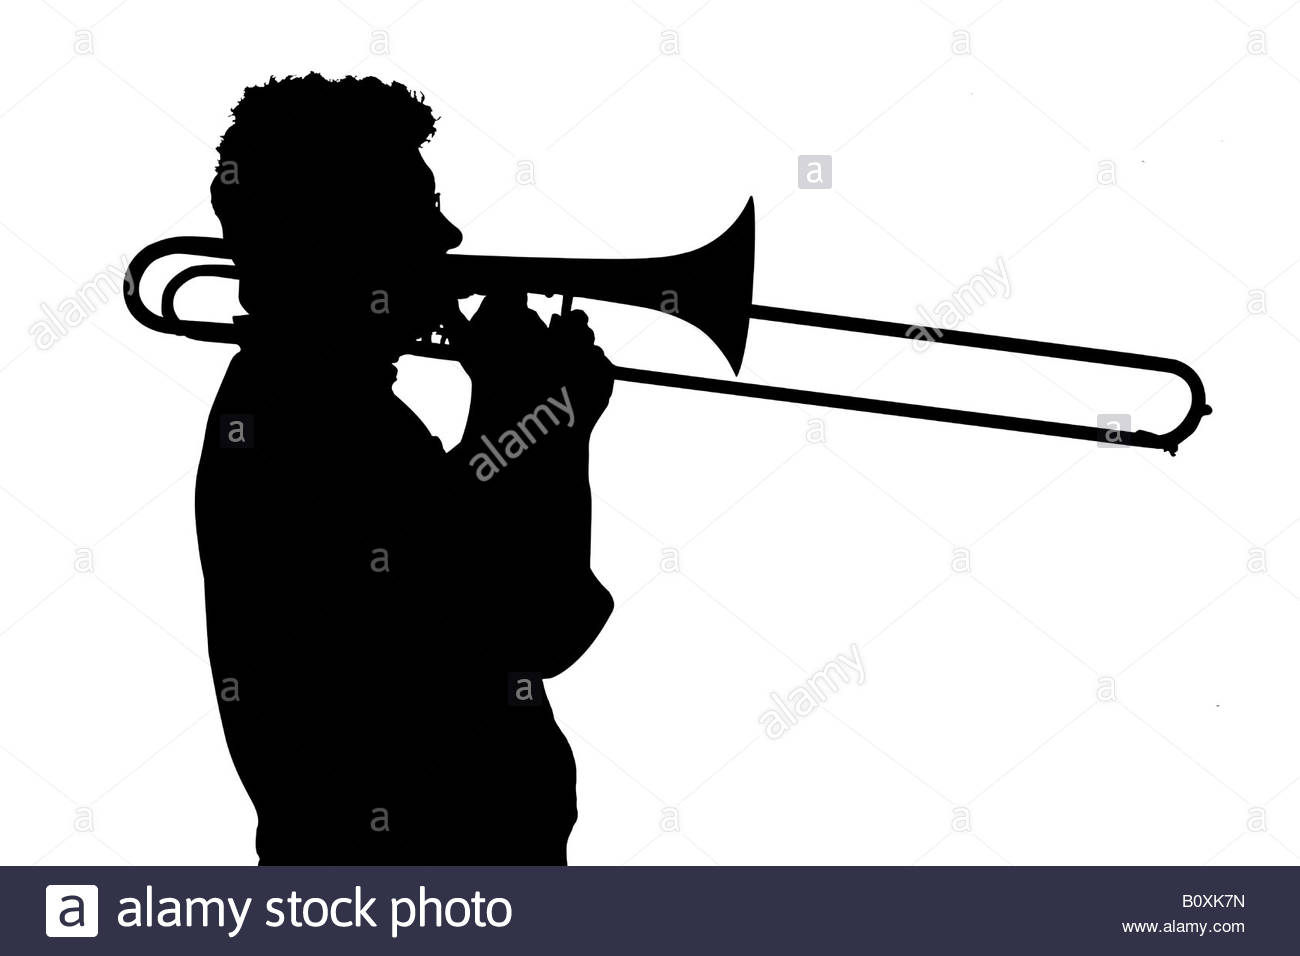 1300x956 Silhouette Of A Man Playing The Trombone Stock Photo 17796233